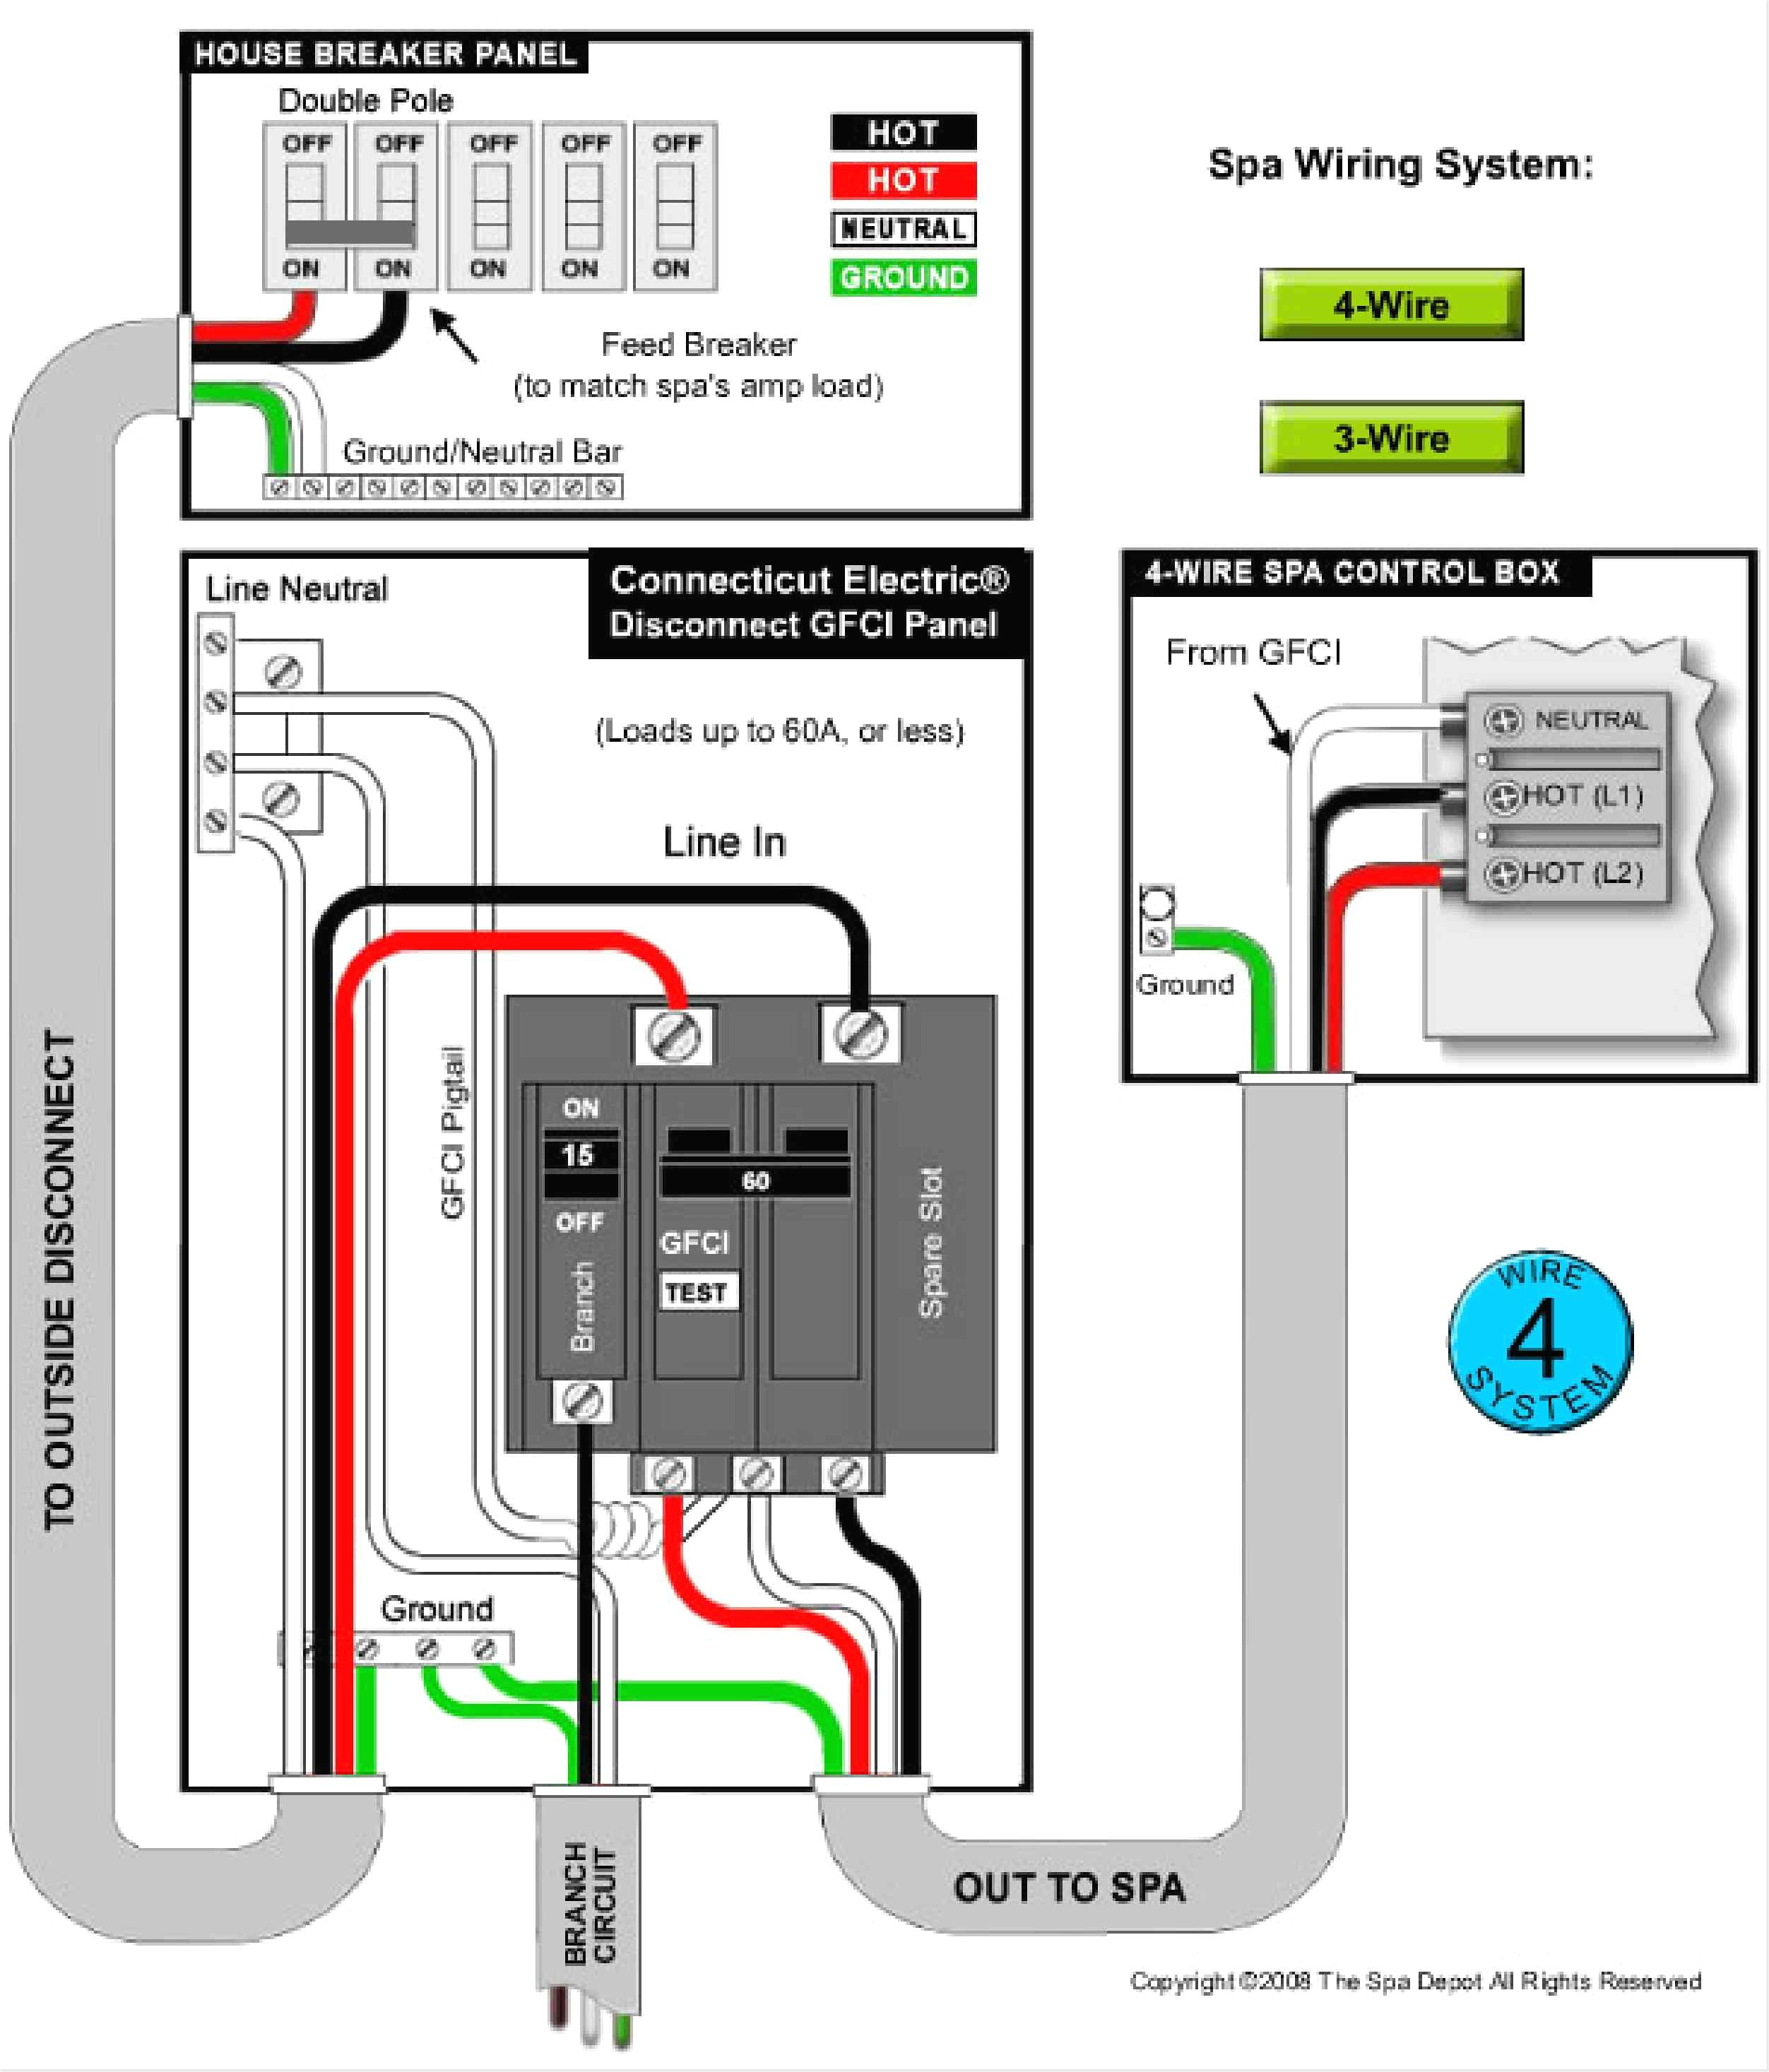 Pool Light Wiring Diagram from wholefoodsonabudget.com